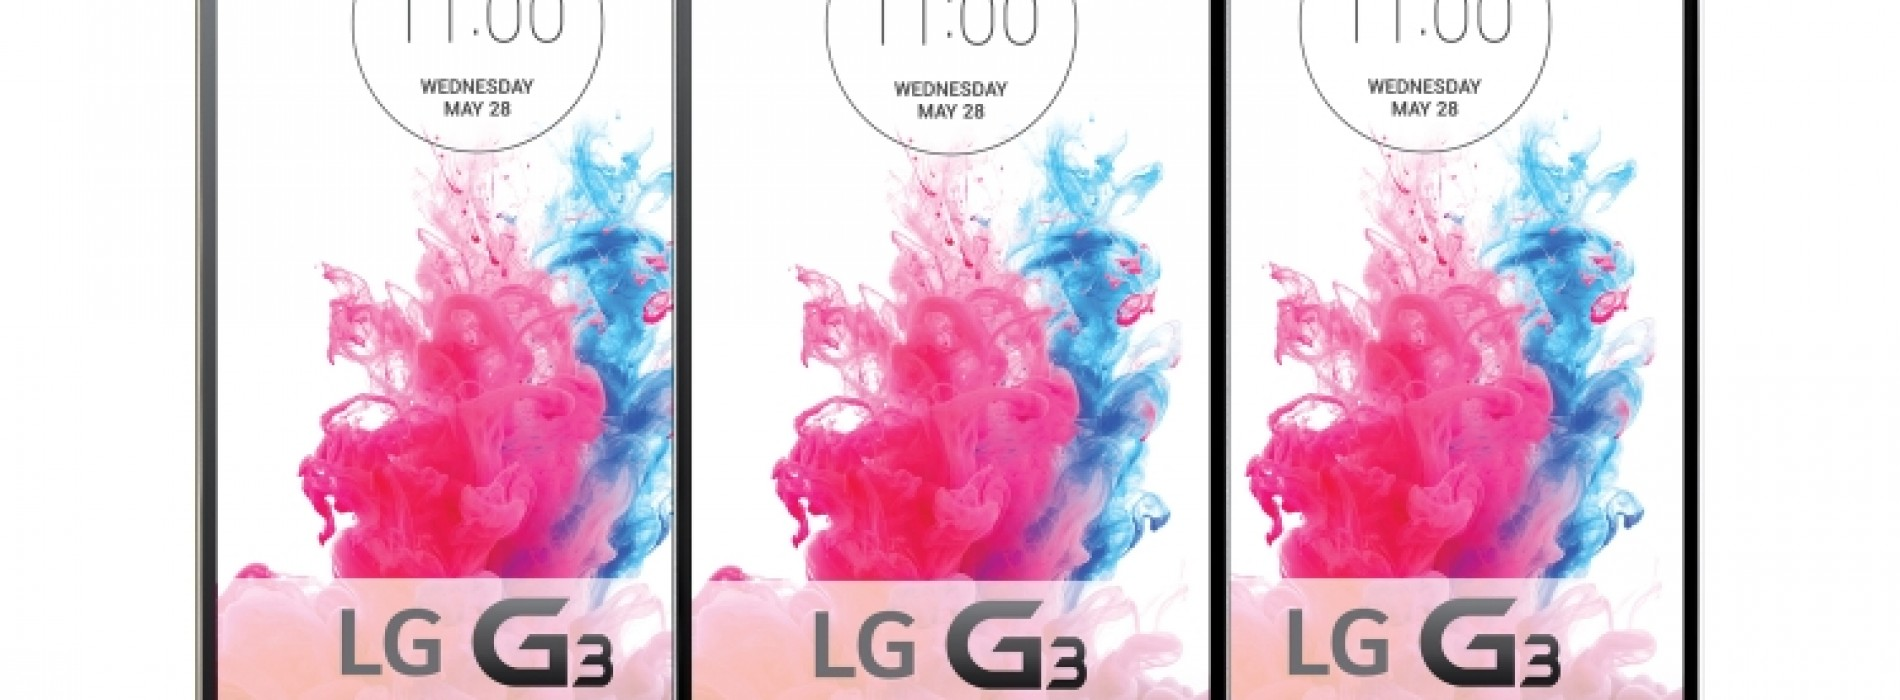 Watch the LG G3 launch event live